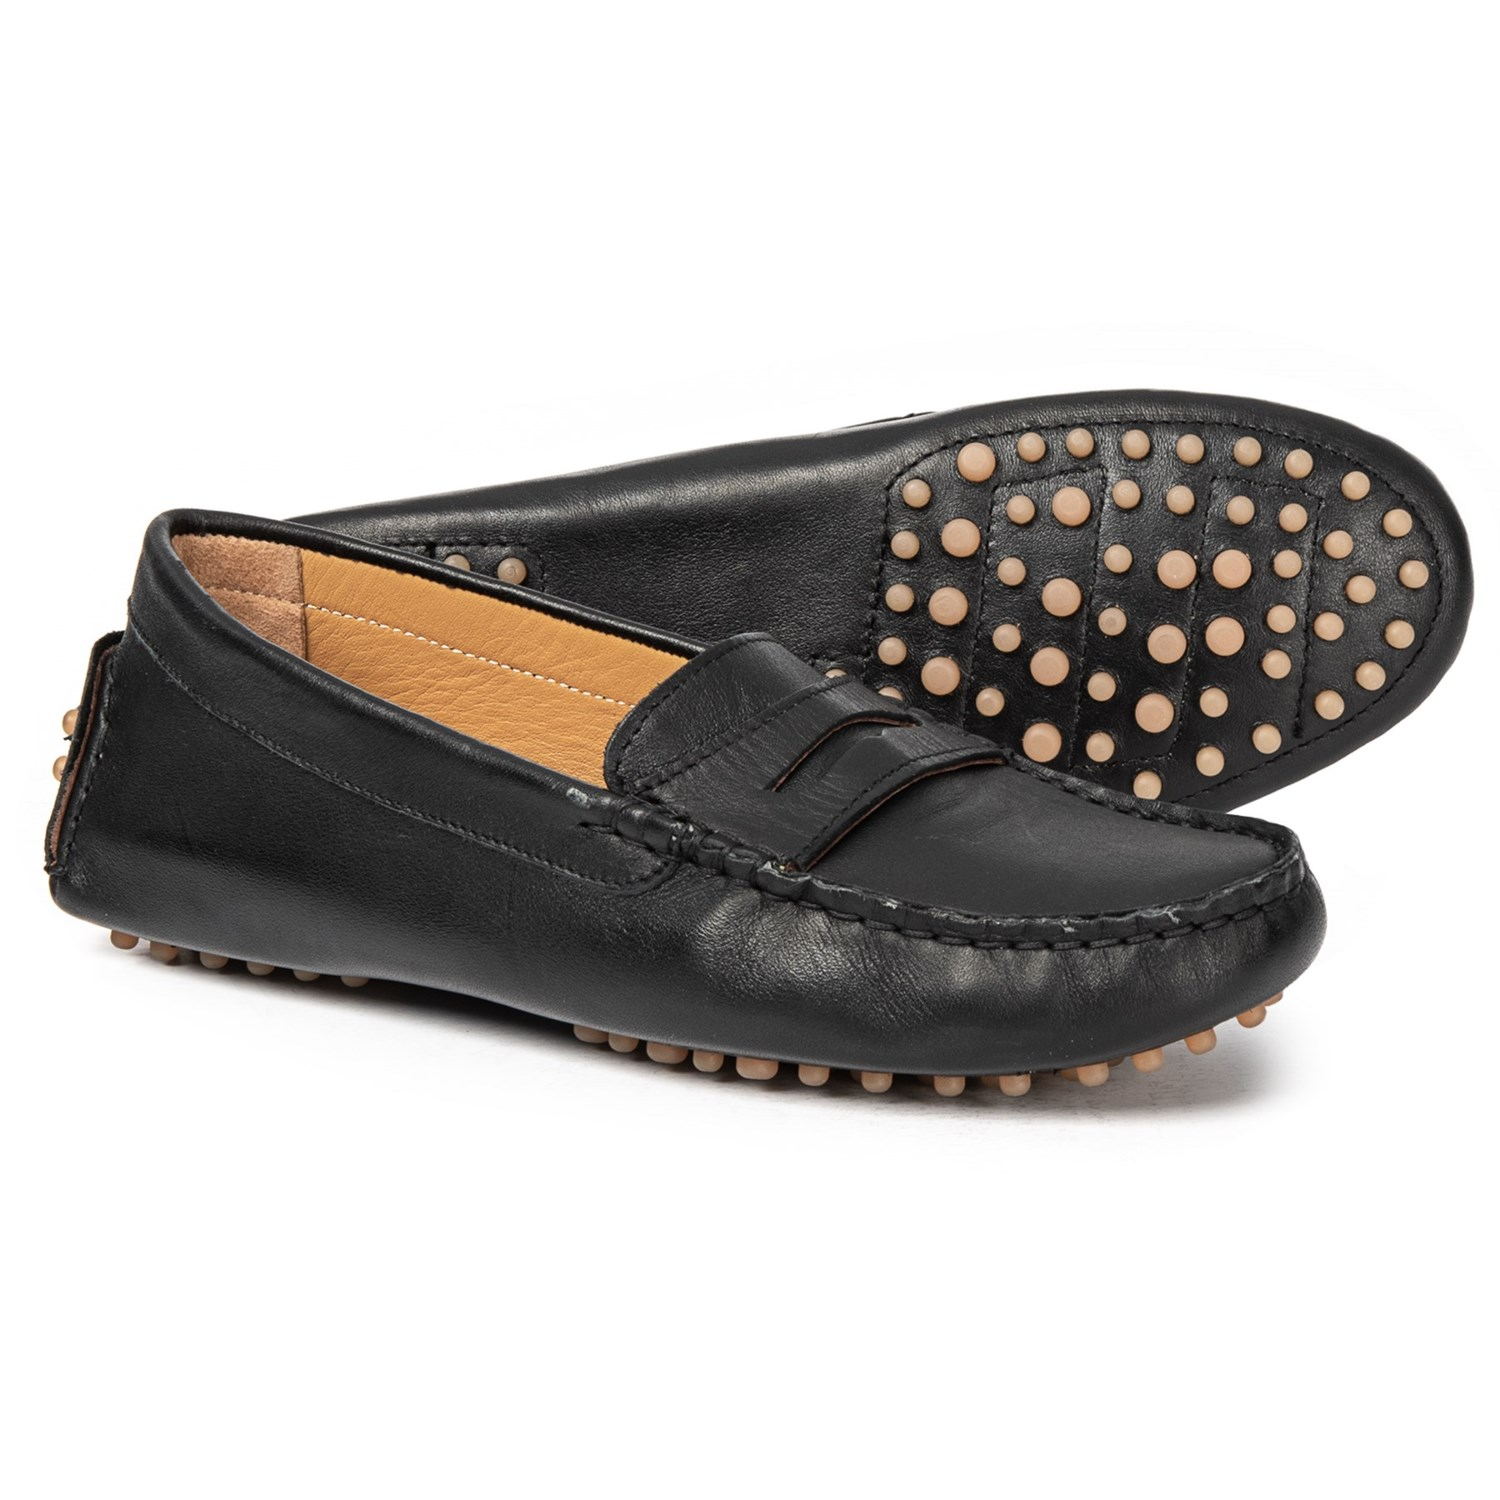 a6db320024a Avellini Made in Italy Penny Moccasin Driver Shoes - Leather (For Women)